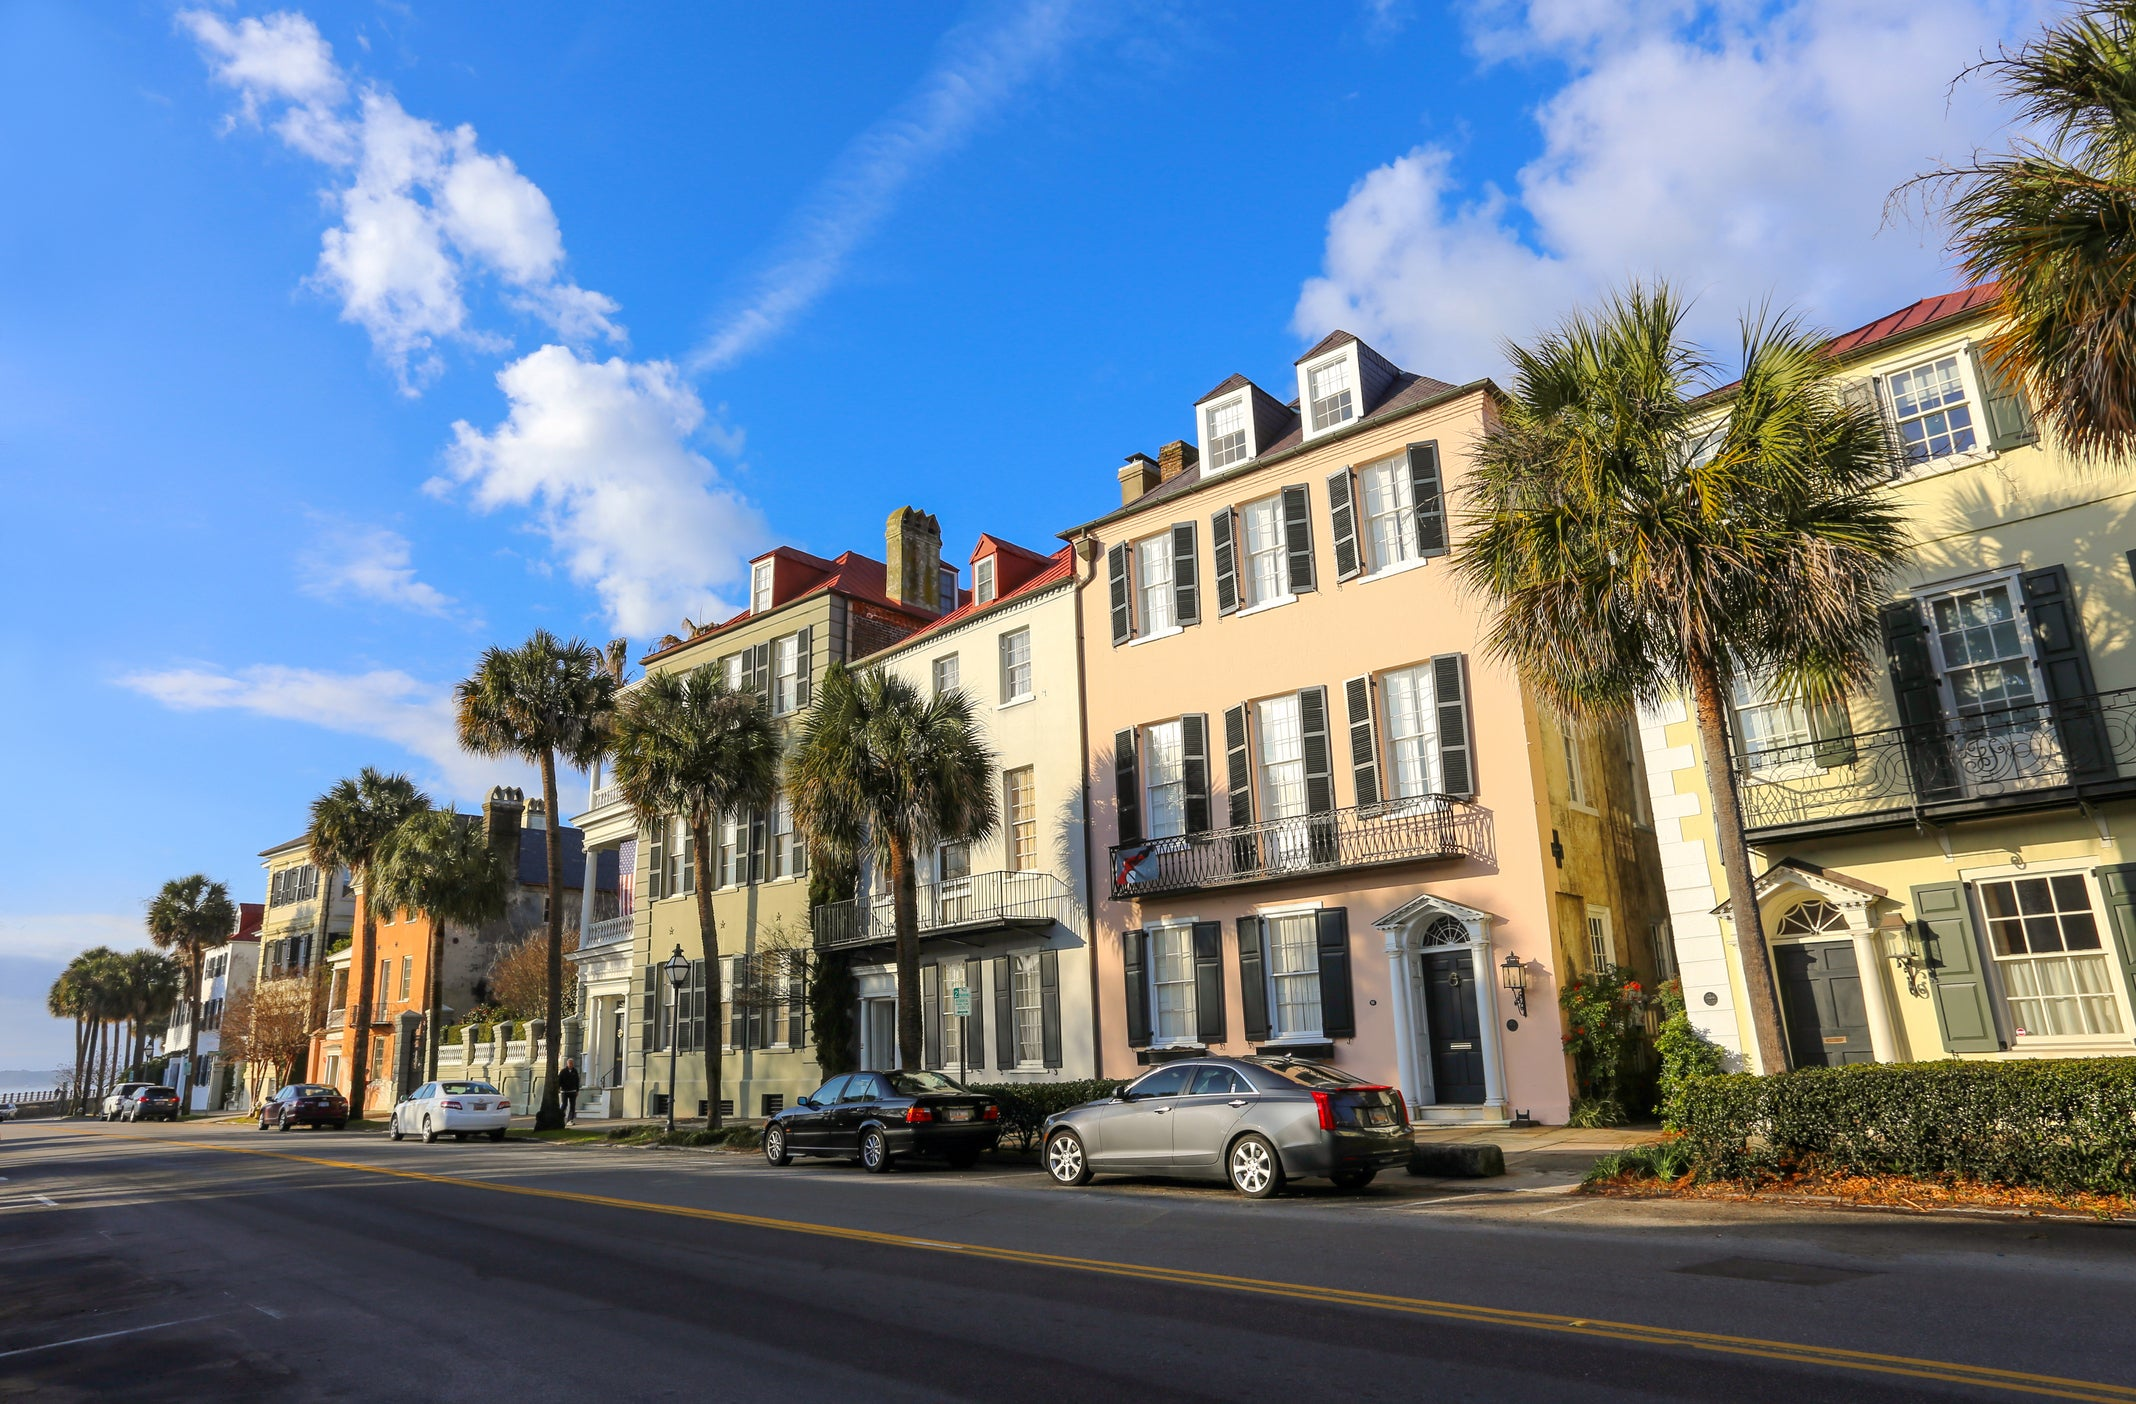 The best romantic destinations according to us news for Inexpensive romantic getaways in south carolina